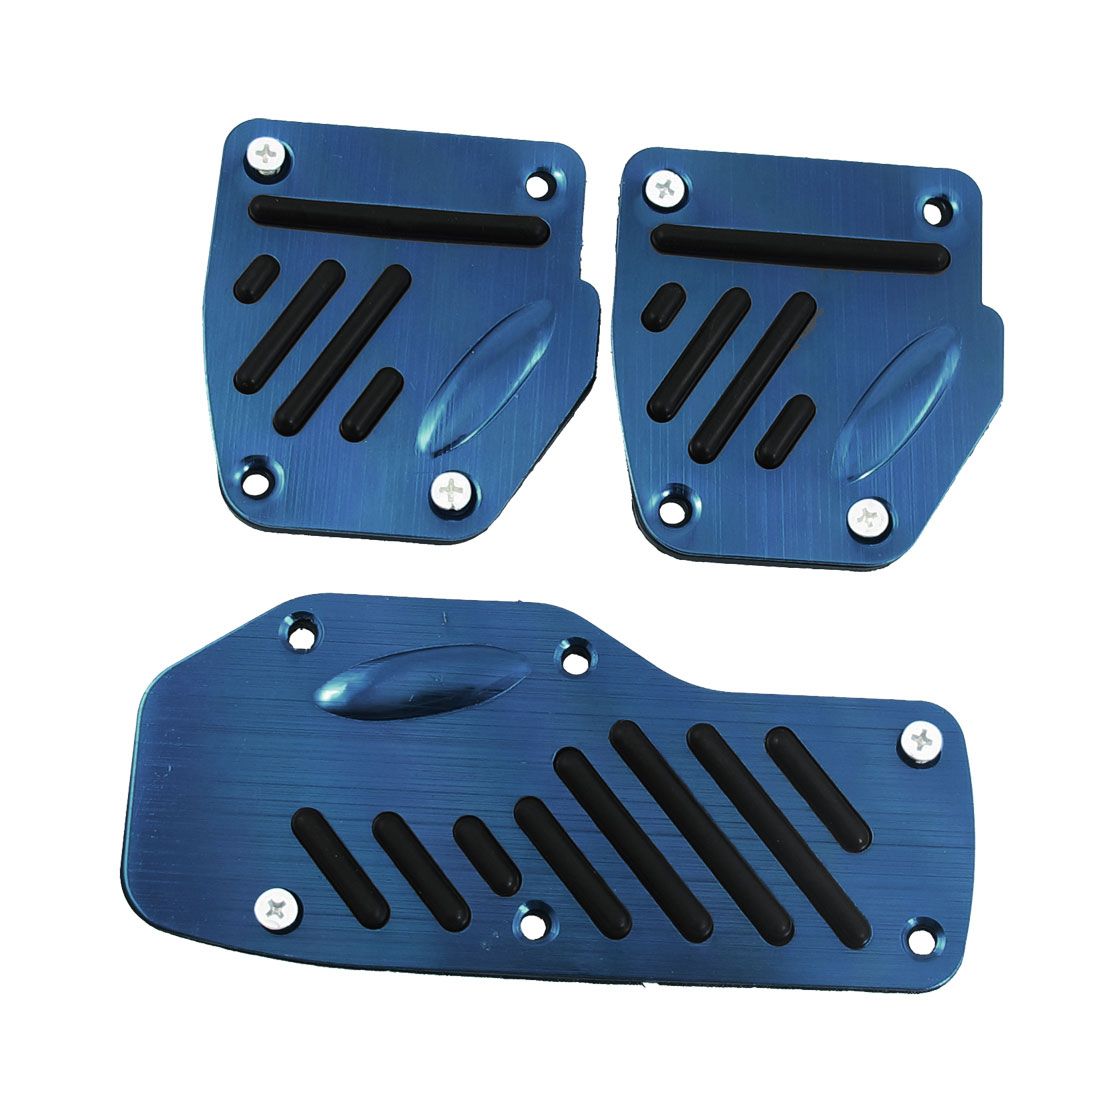 3 Pcs Blue Aluminum Alloy Rubber Car Automobile Auto Non-slip Pedal Cover